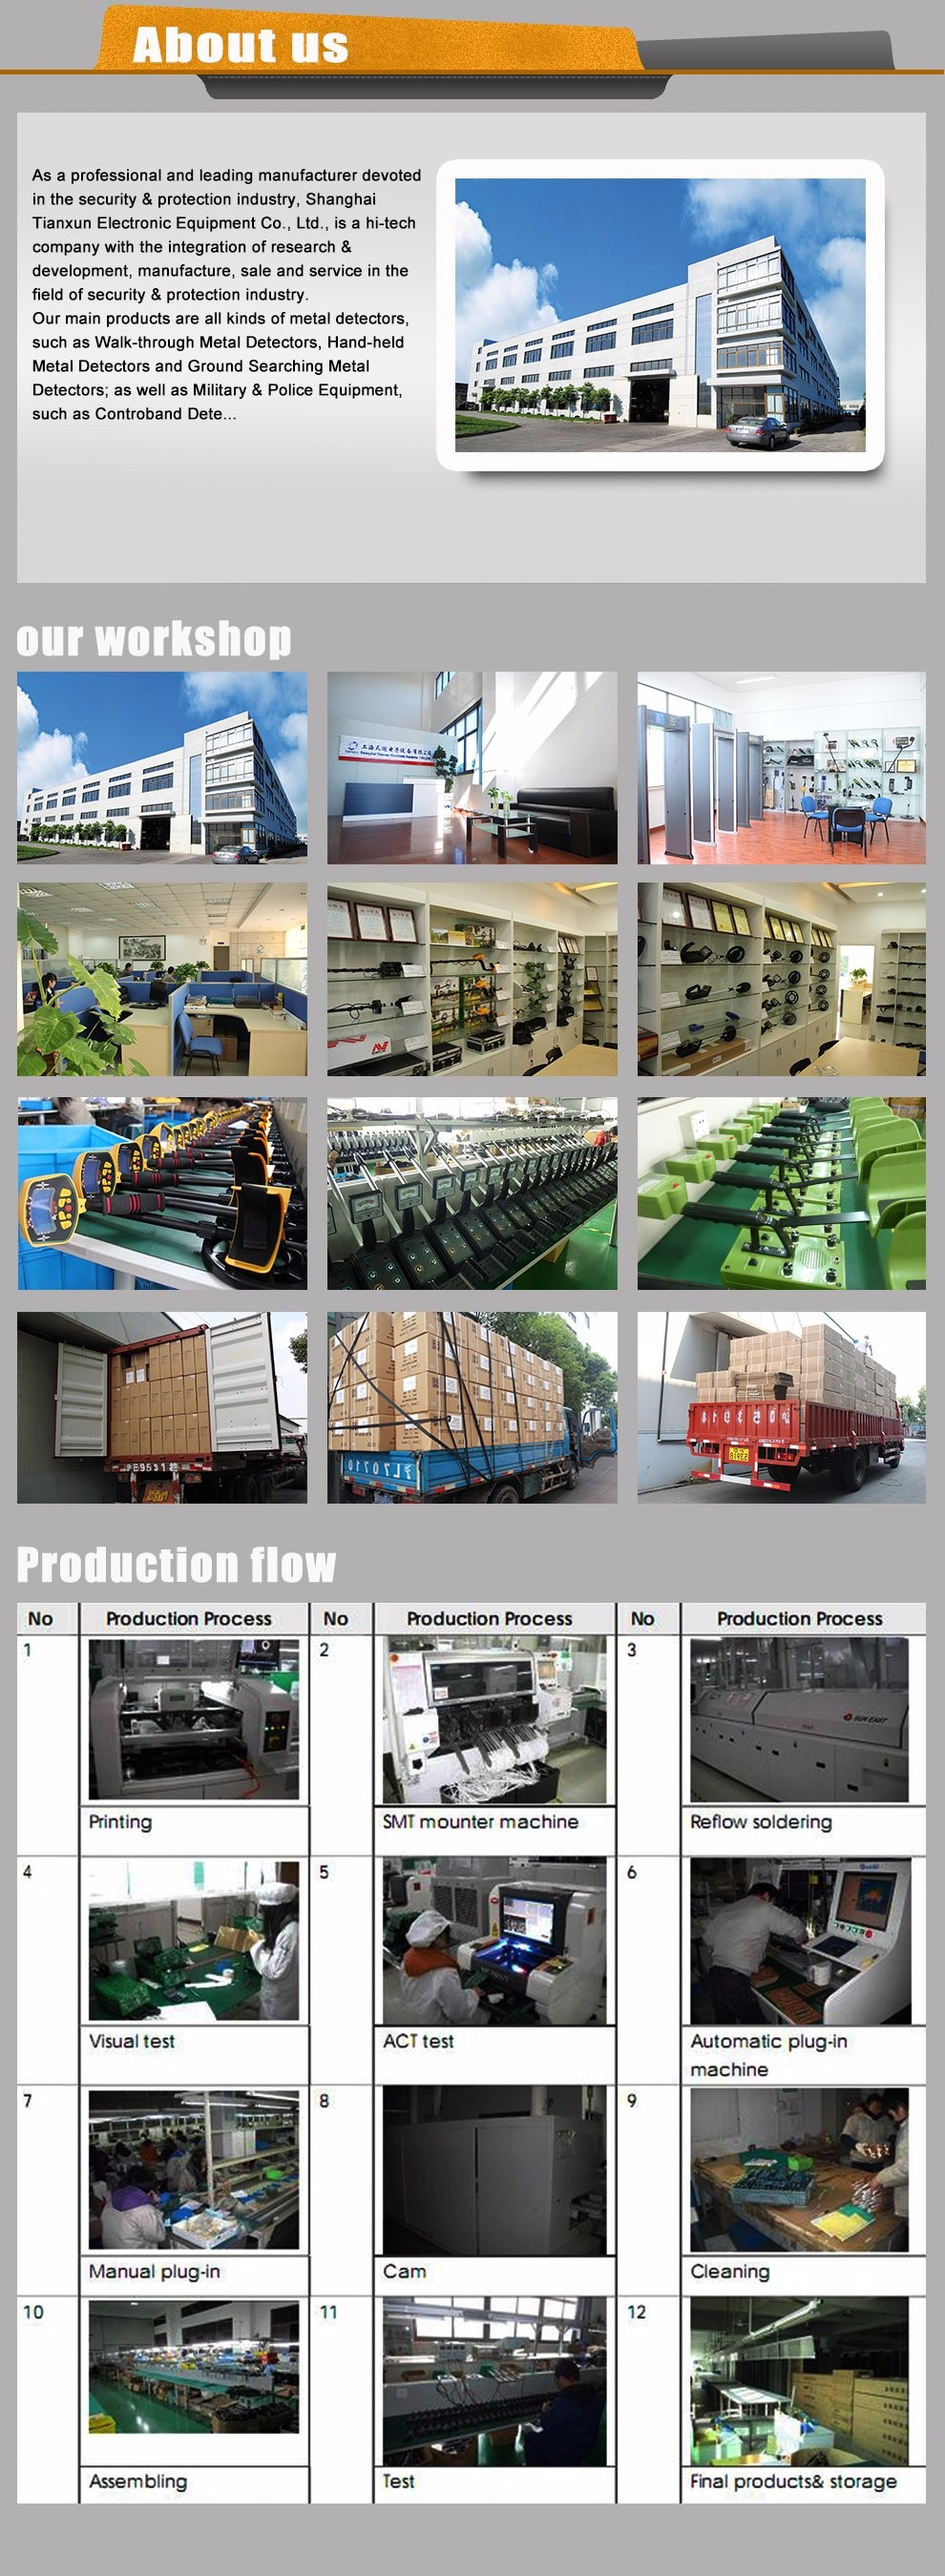 Company profile and factory show